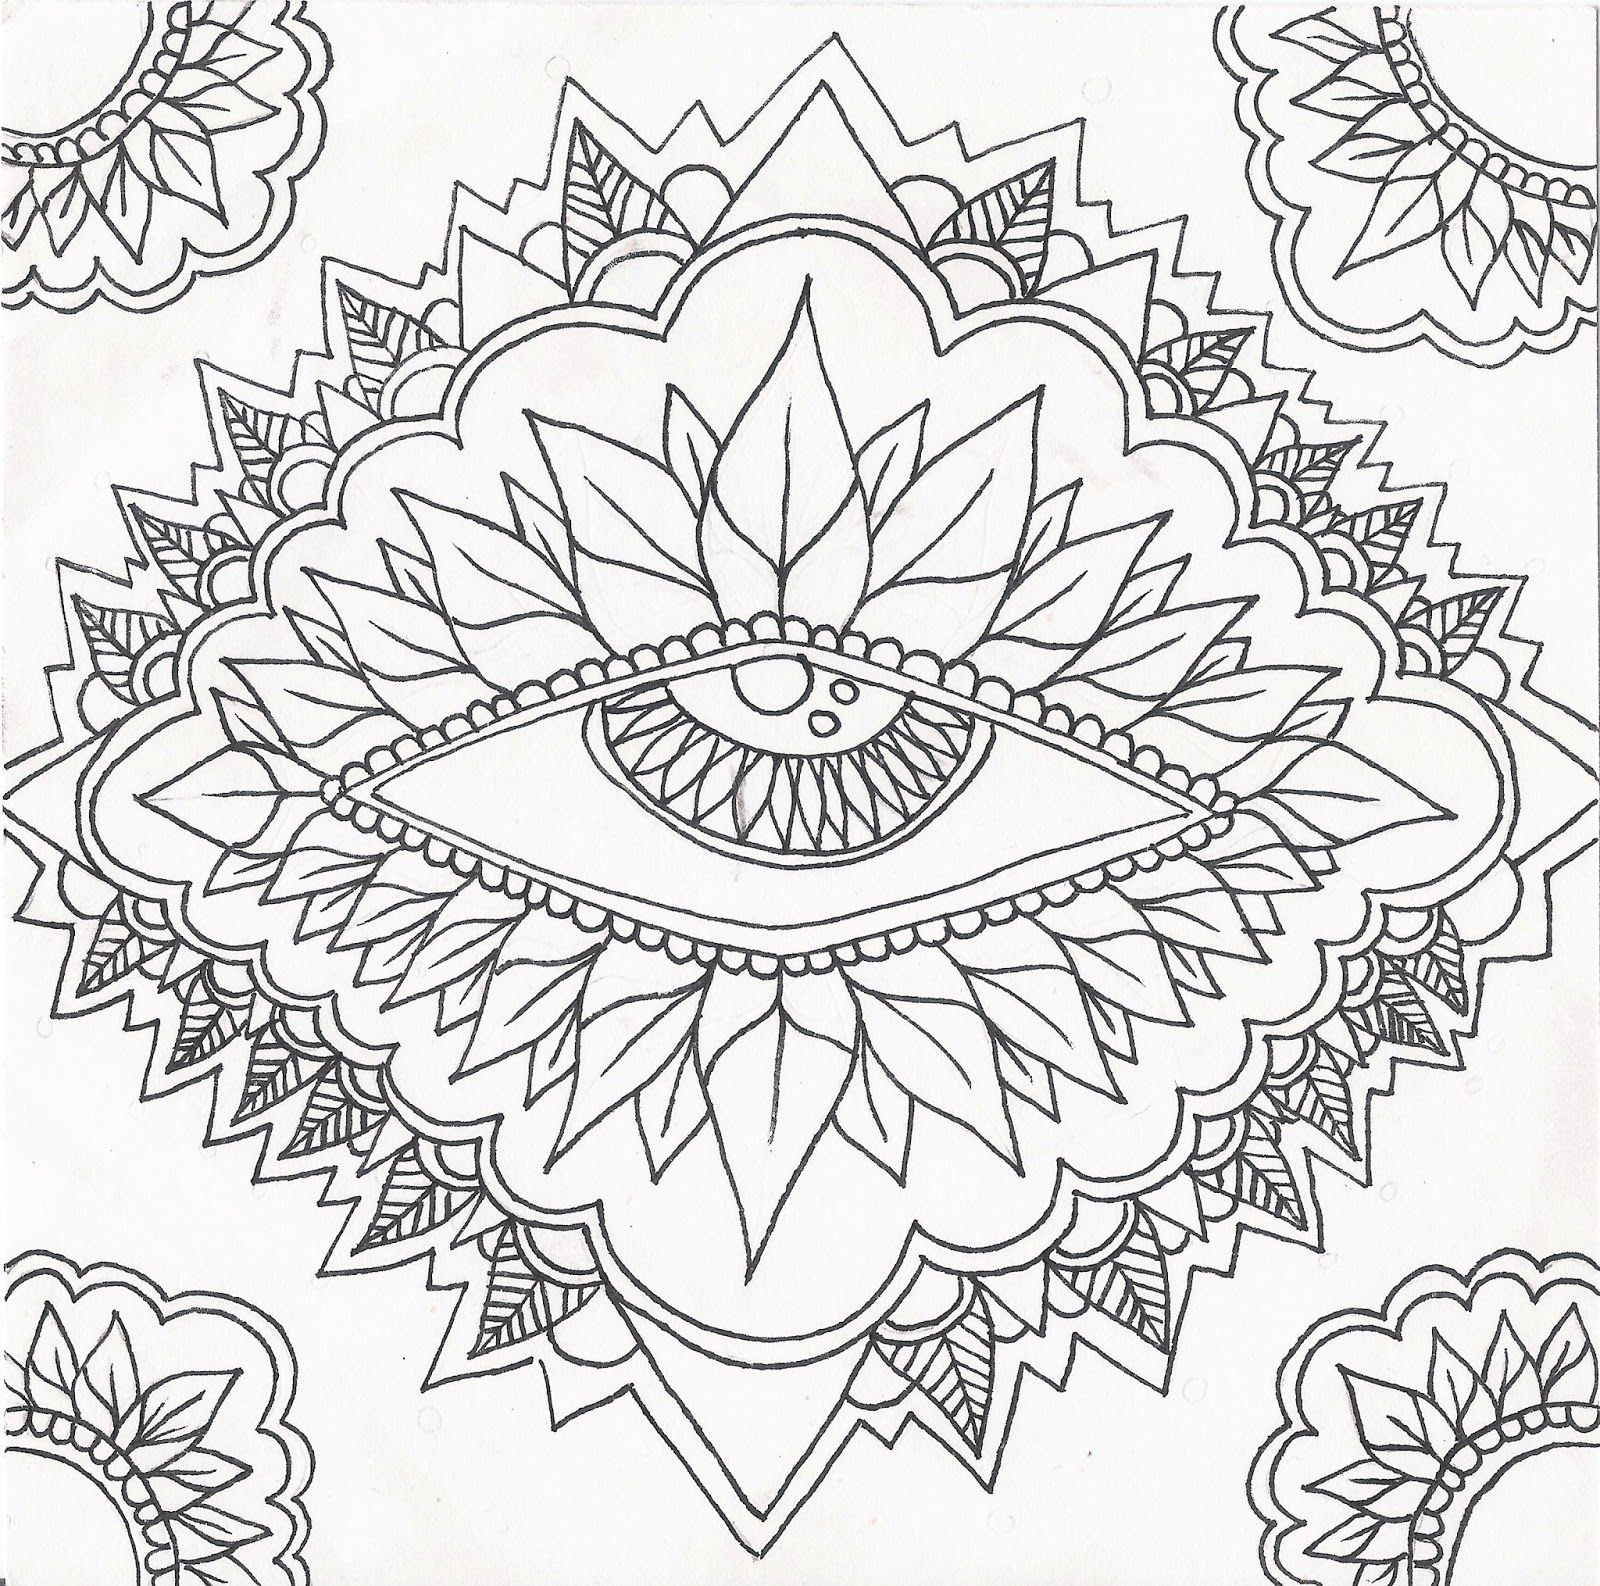 Sun mandala coloring pages - Eye With Mandala Inside Google Search Abstract Coloring Pagesmandala